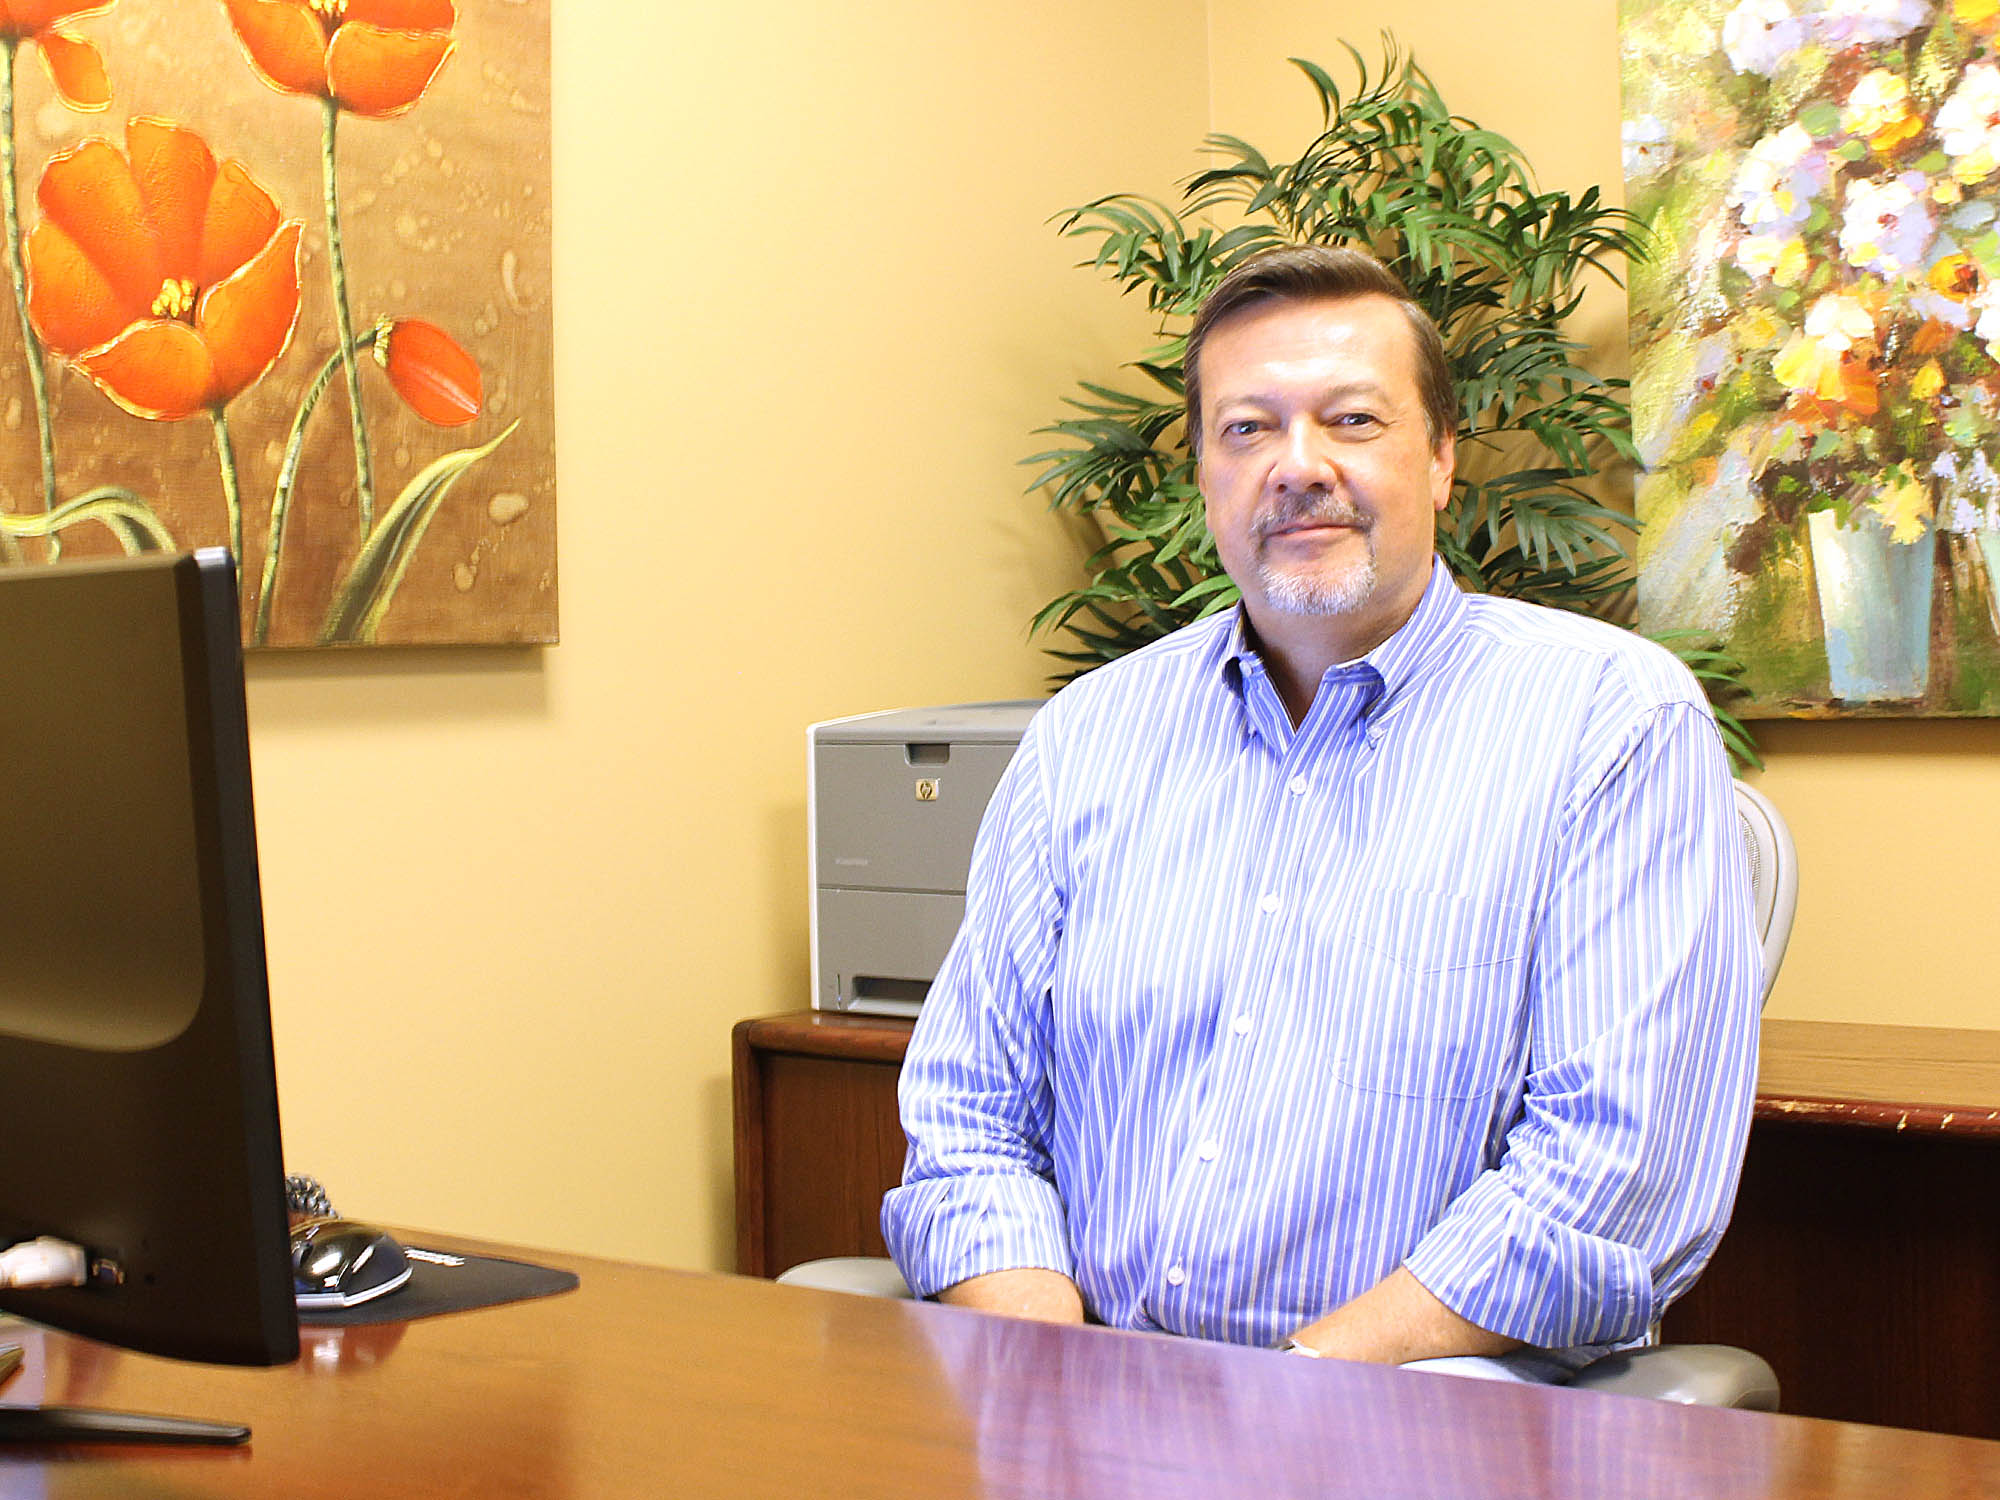 John Hughes is president and co-founder of Base Commerce in Tempe, which provides software companies with specialized services for developing payment systems.